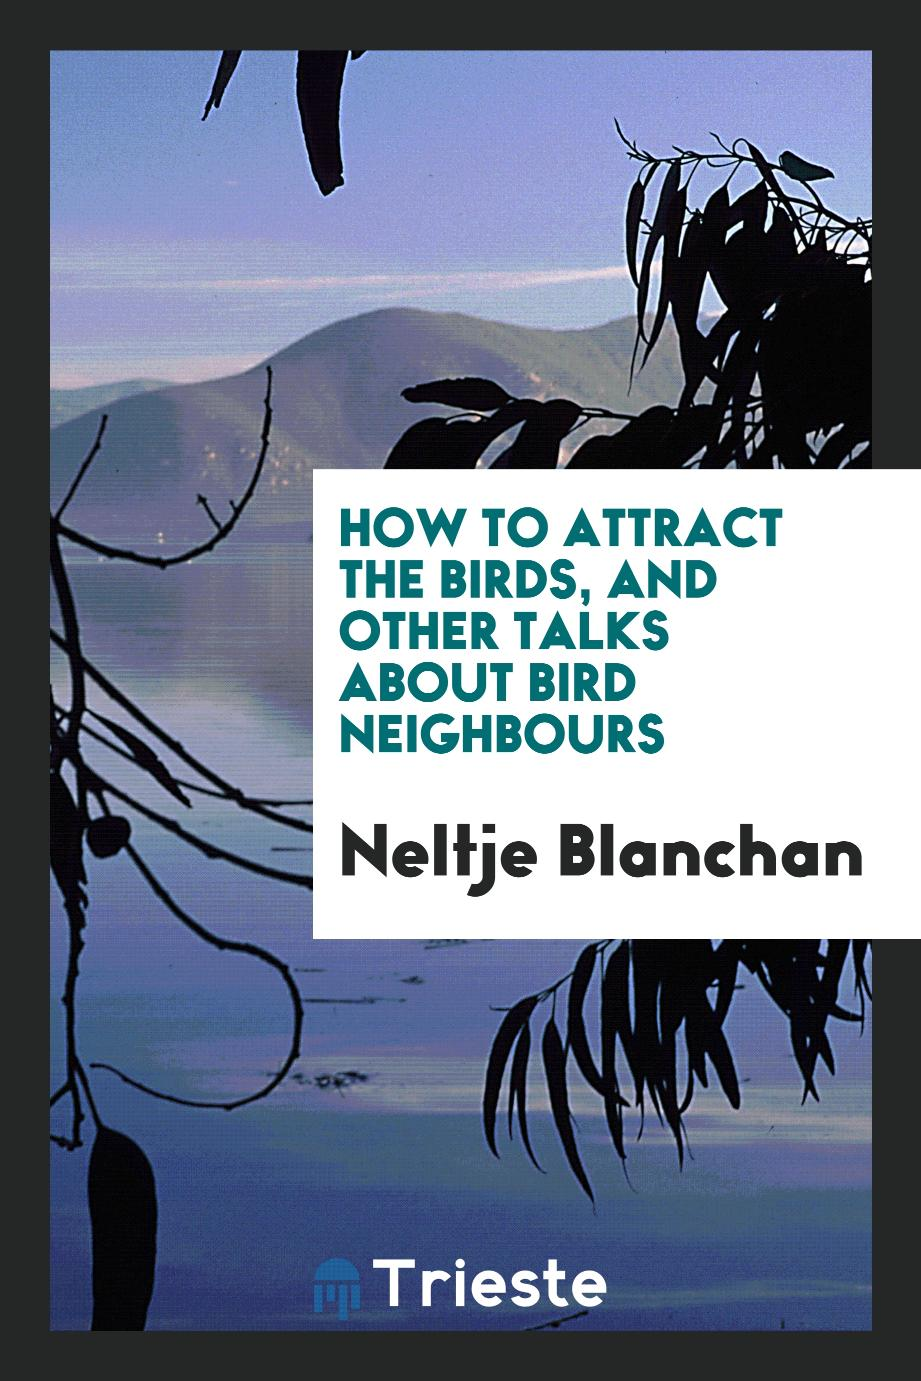 How to Attract the Birds, and Other Talks about Bird Neighbours